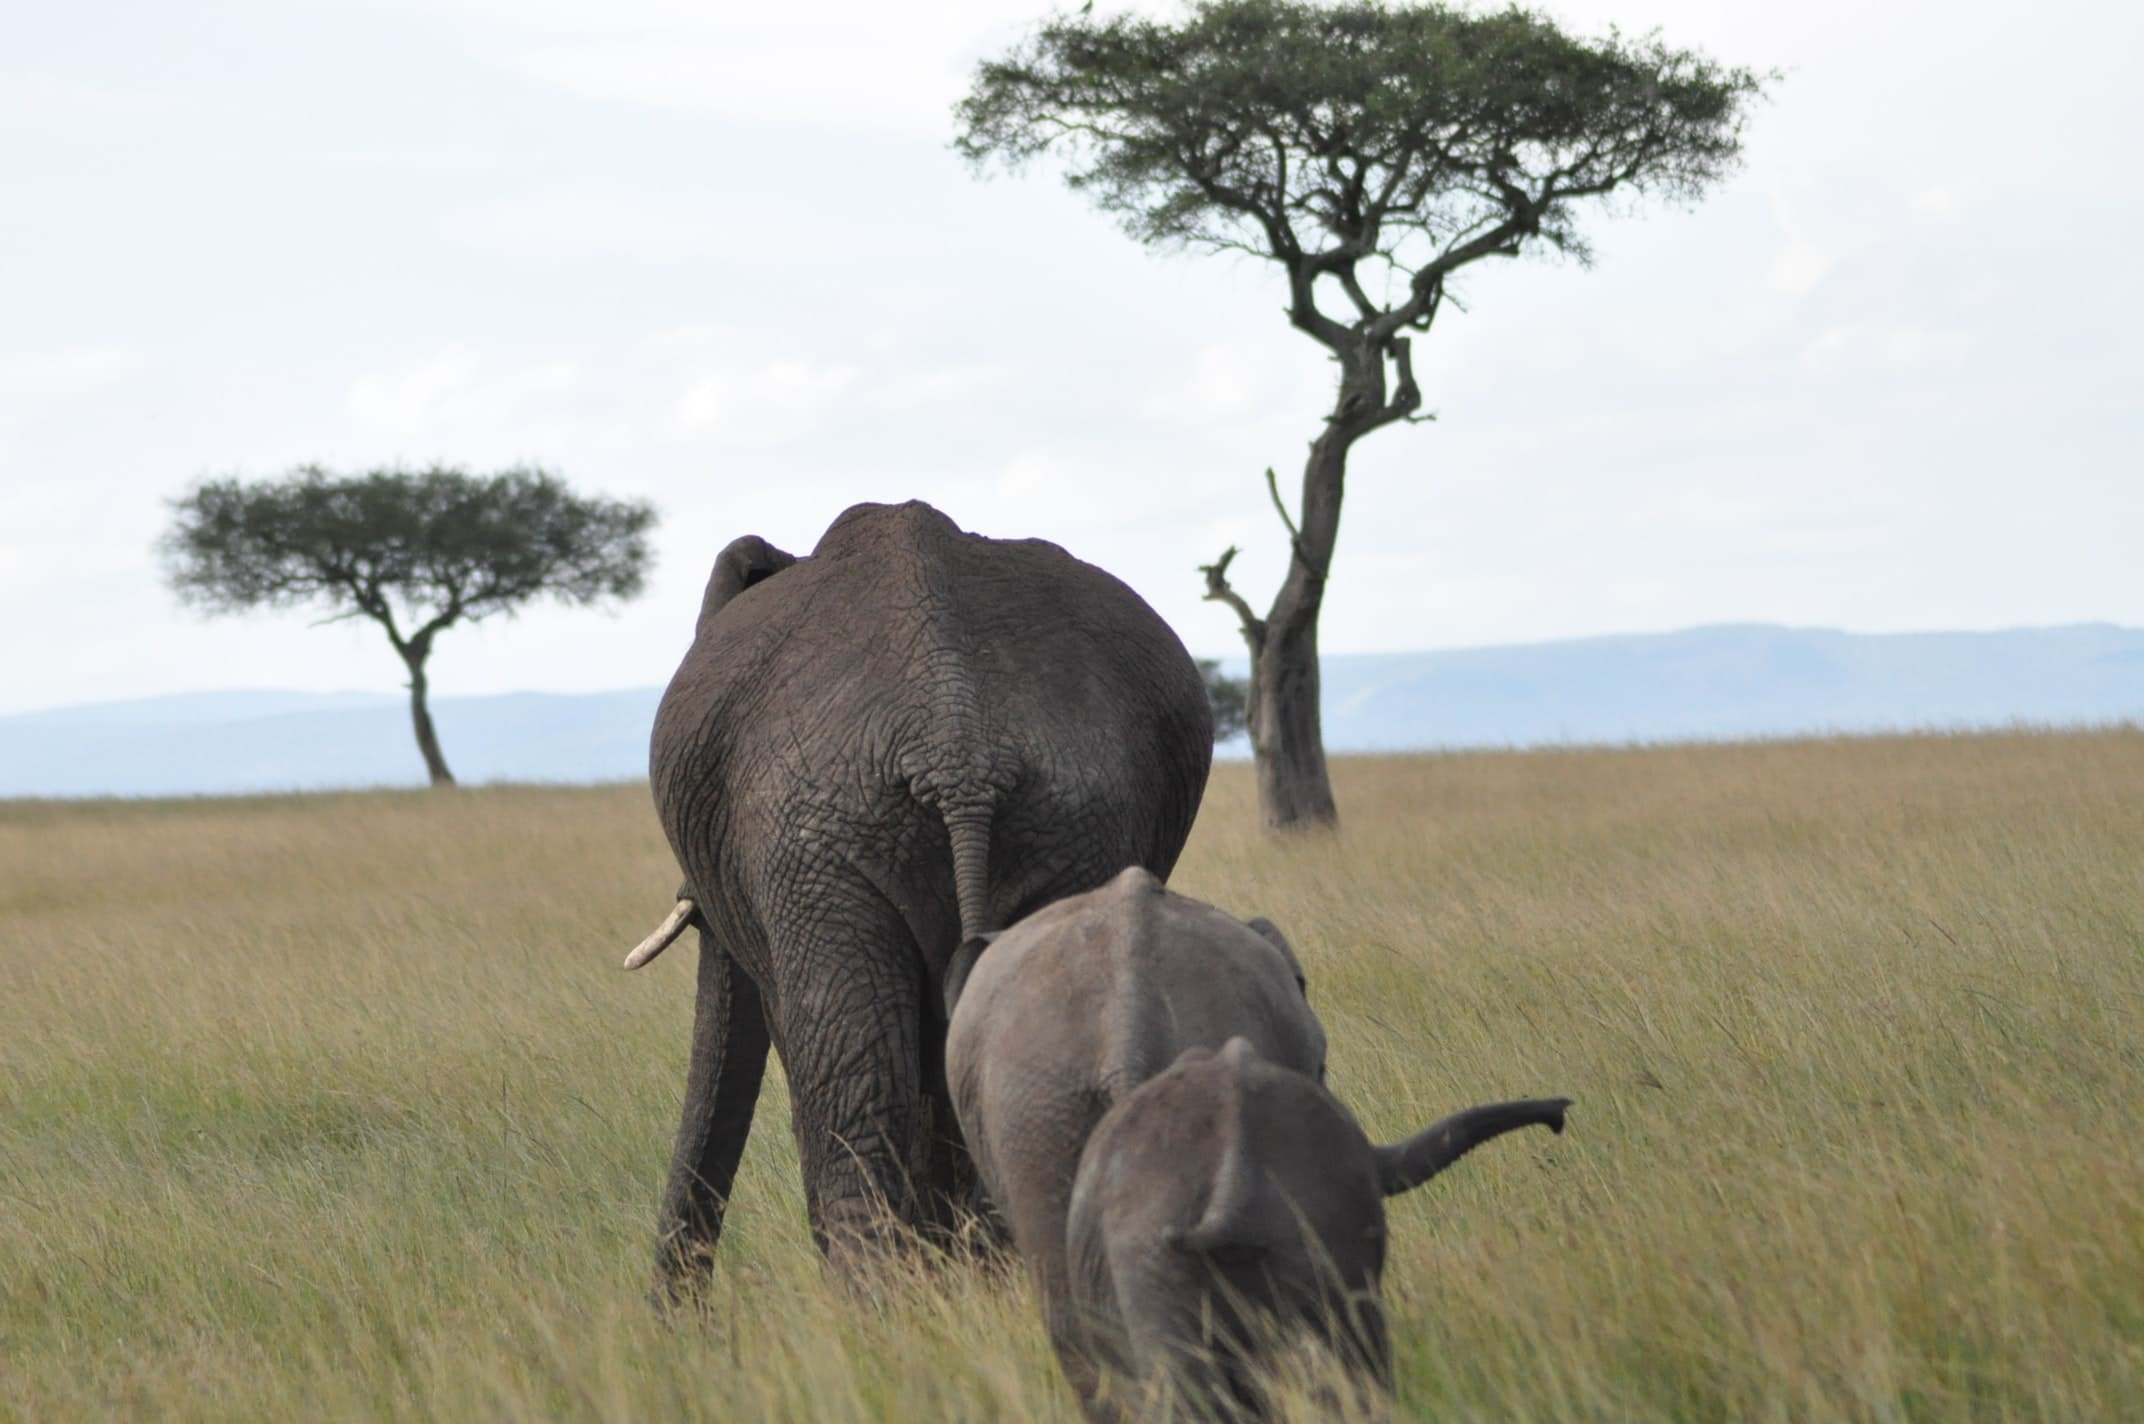 Two baby elephants following their mother in the savannah